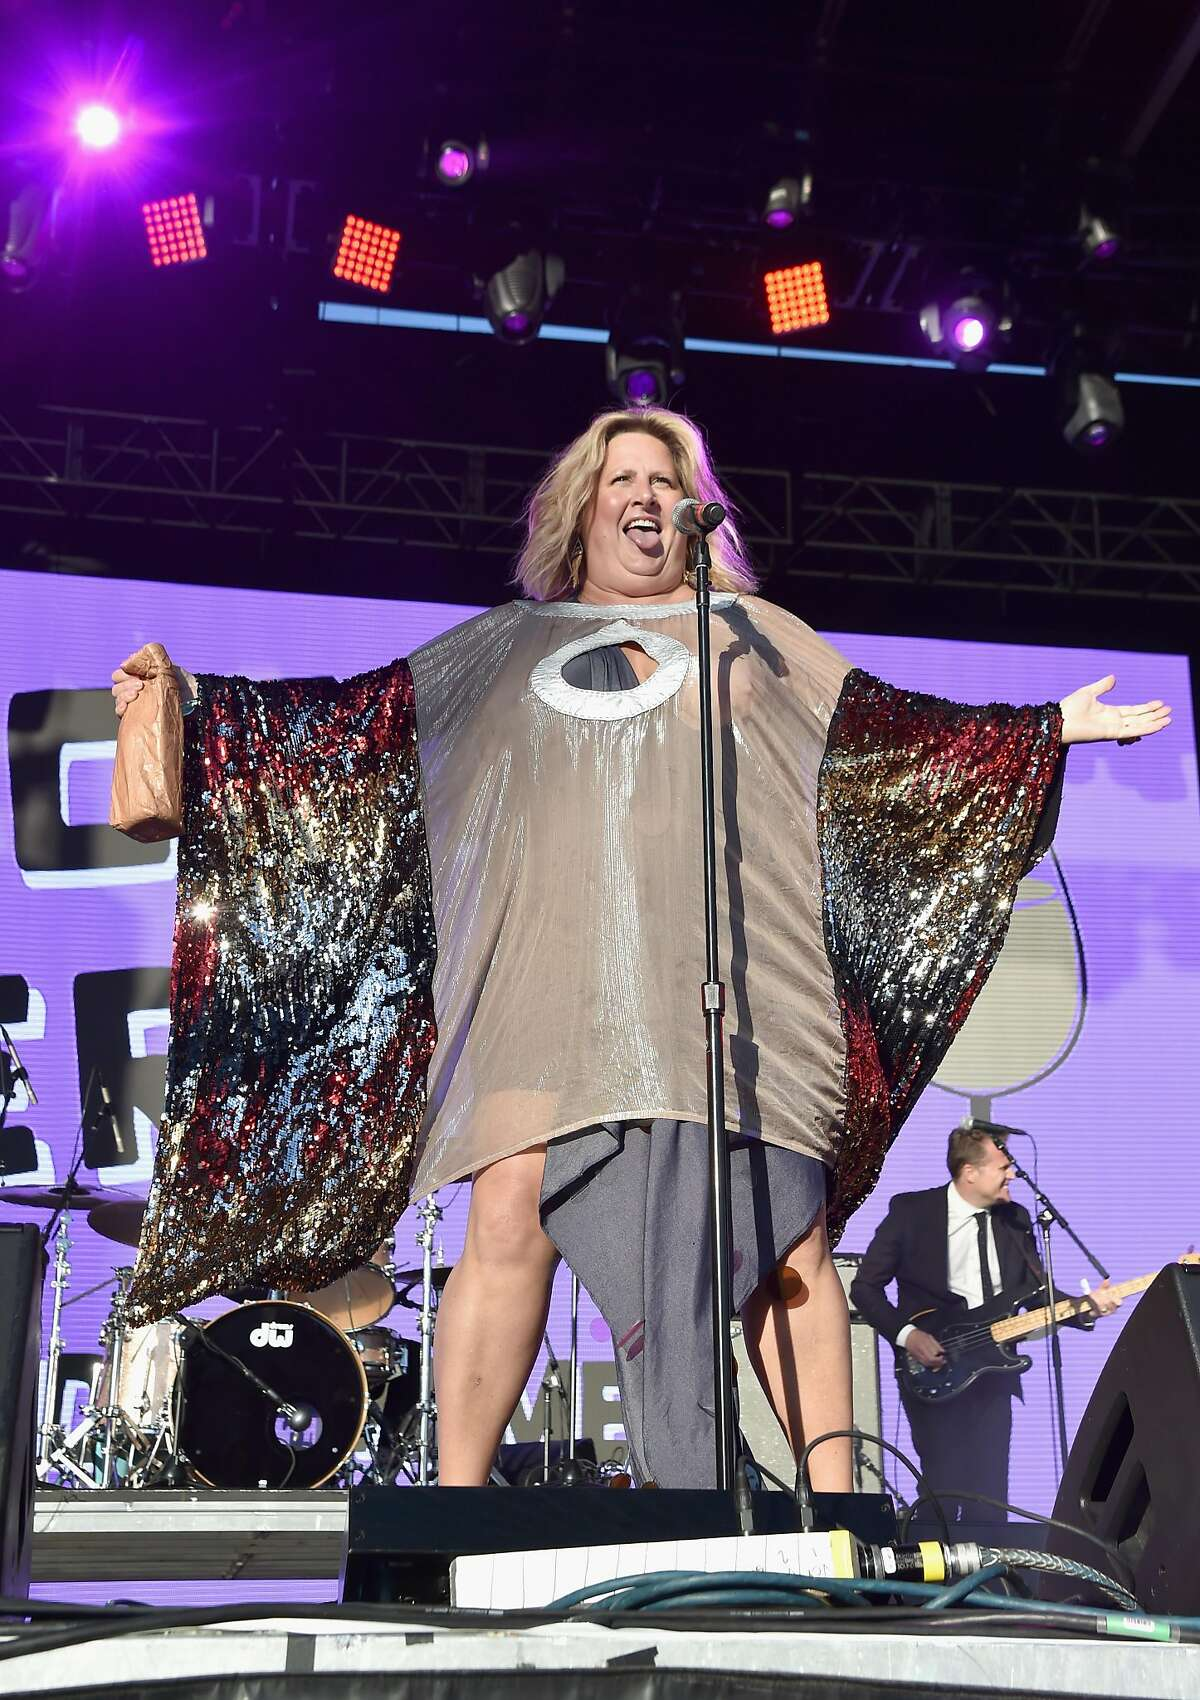 Singer and comedian Bridget Everett performed with her band the Tender Moments at Clusterfest on Saturday, June 2, in San Francisco.